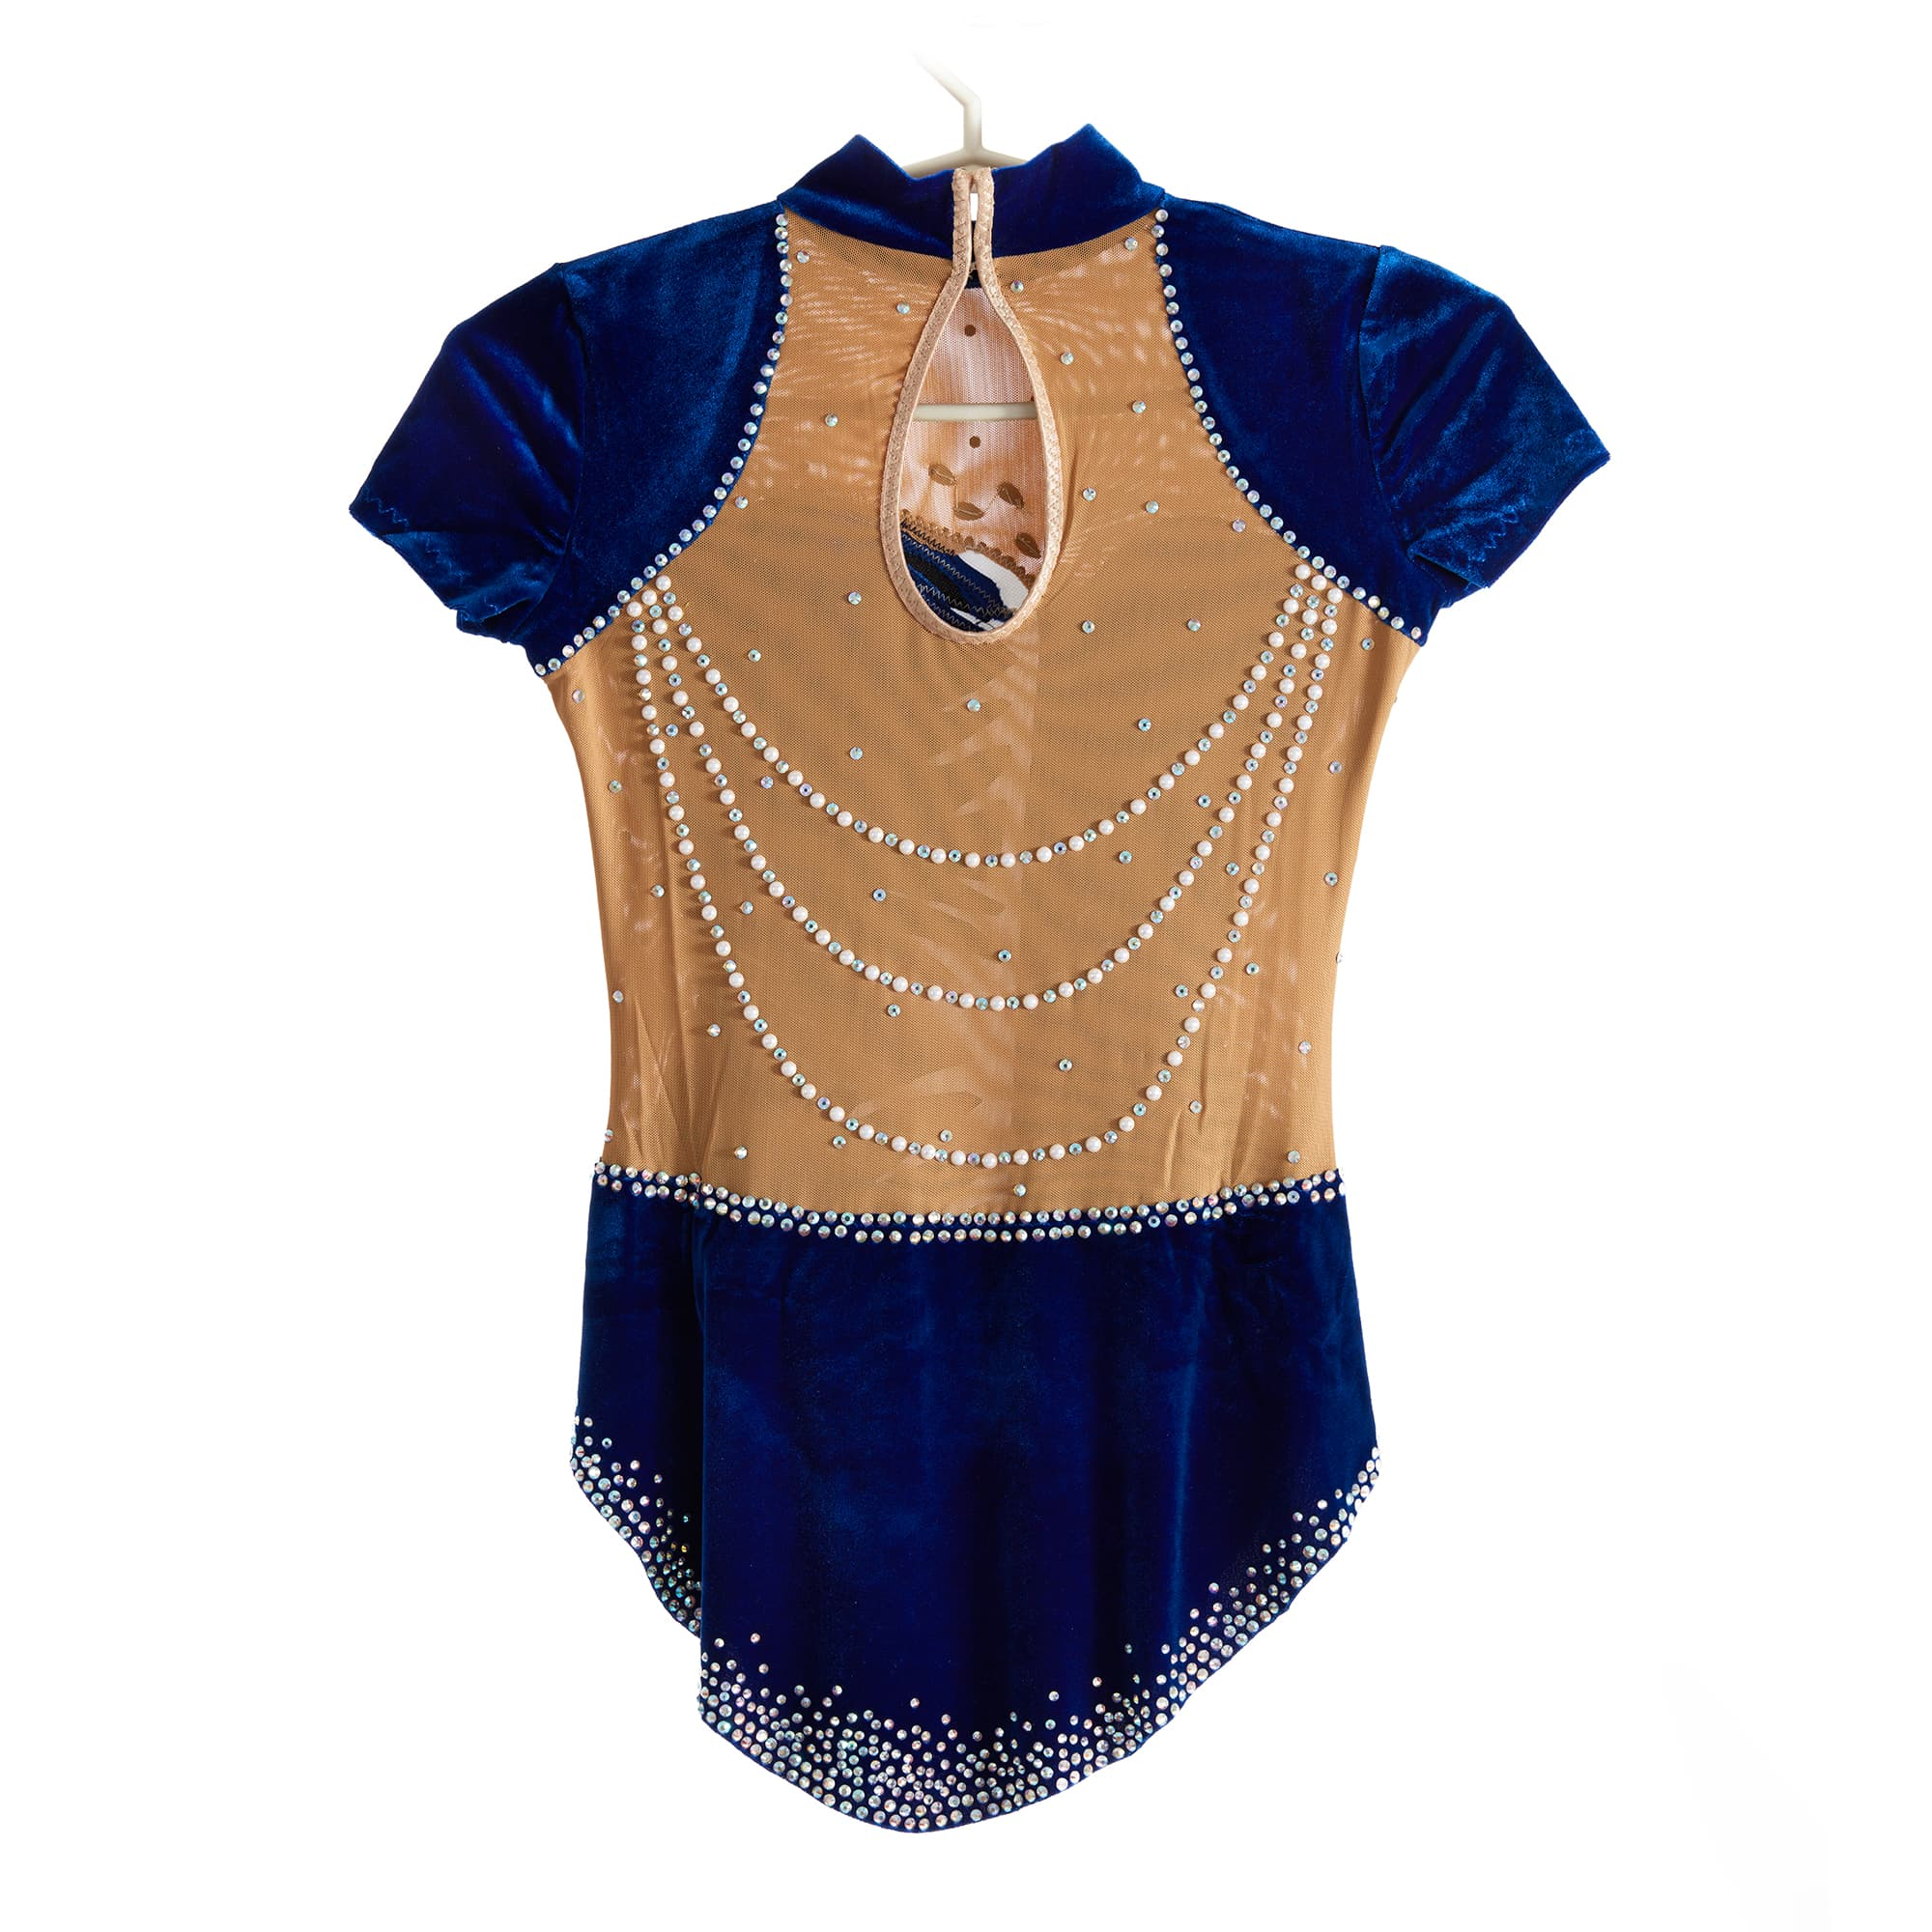 Back of Stock Velvet Blue & Silver Competition Leotard № 217 with short cap sleeves & collar